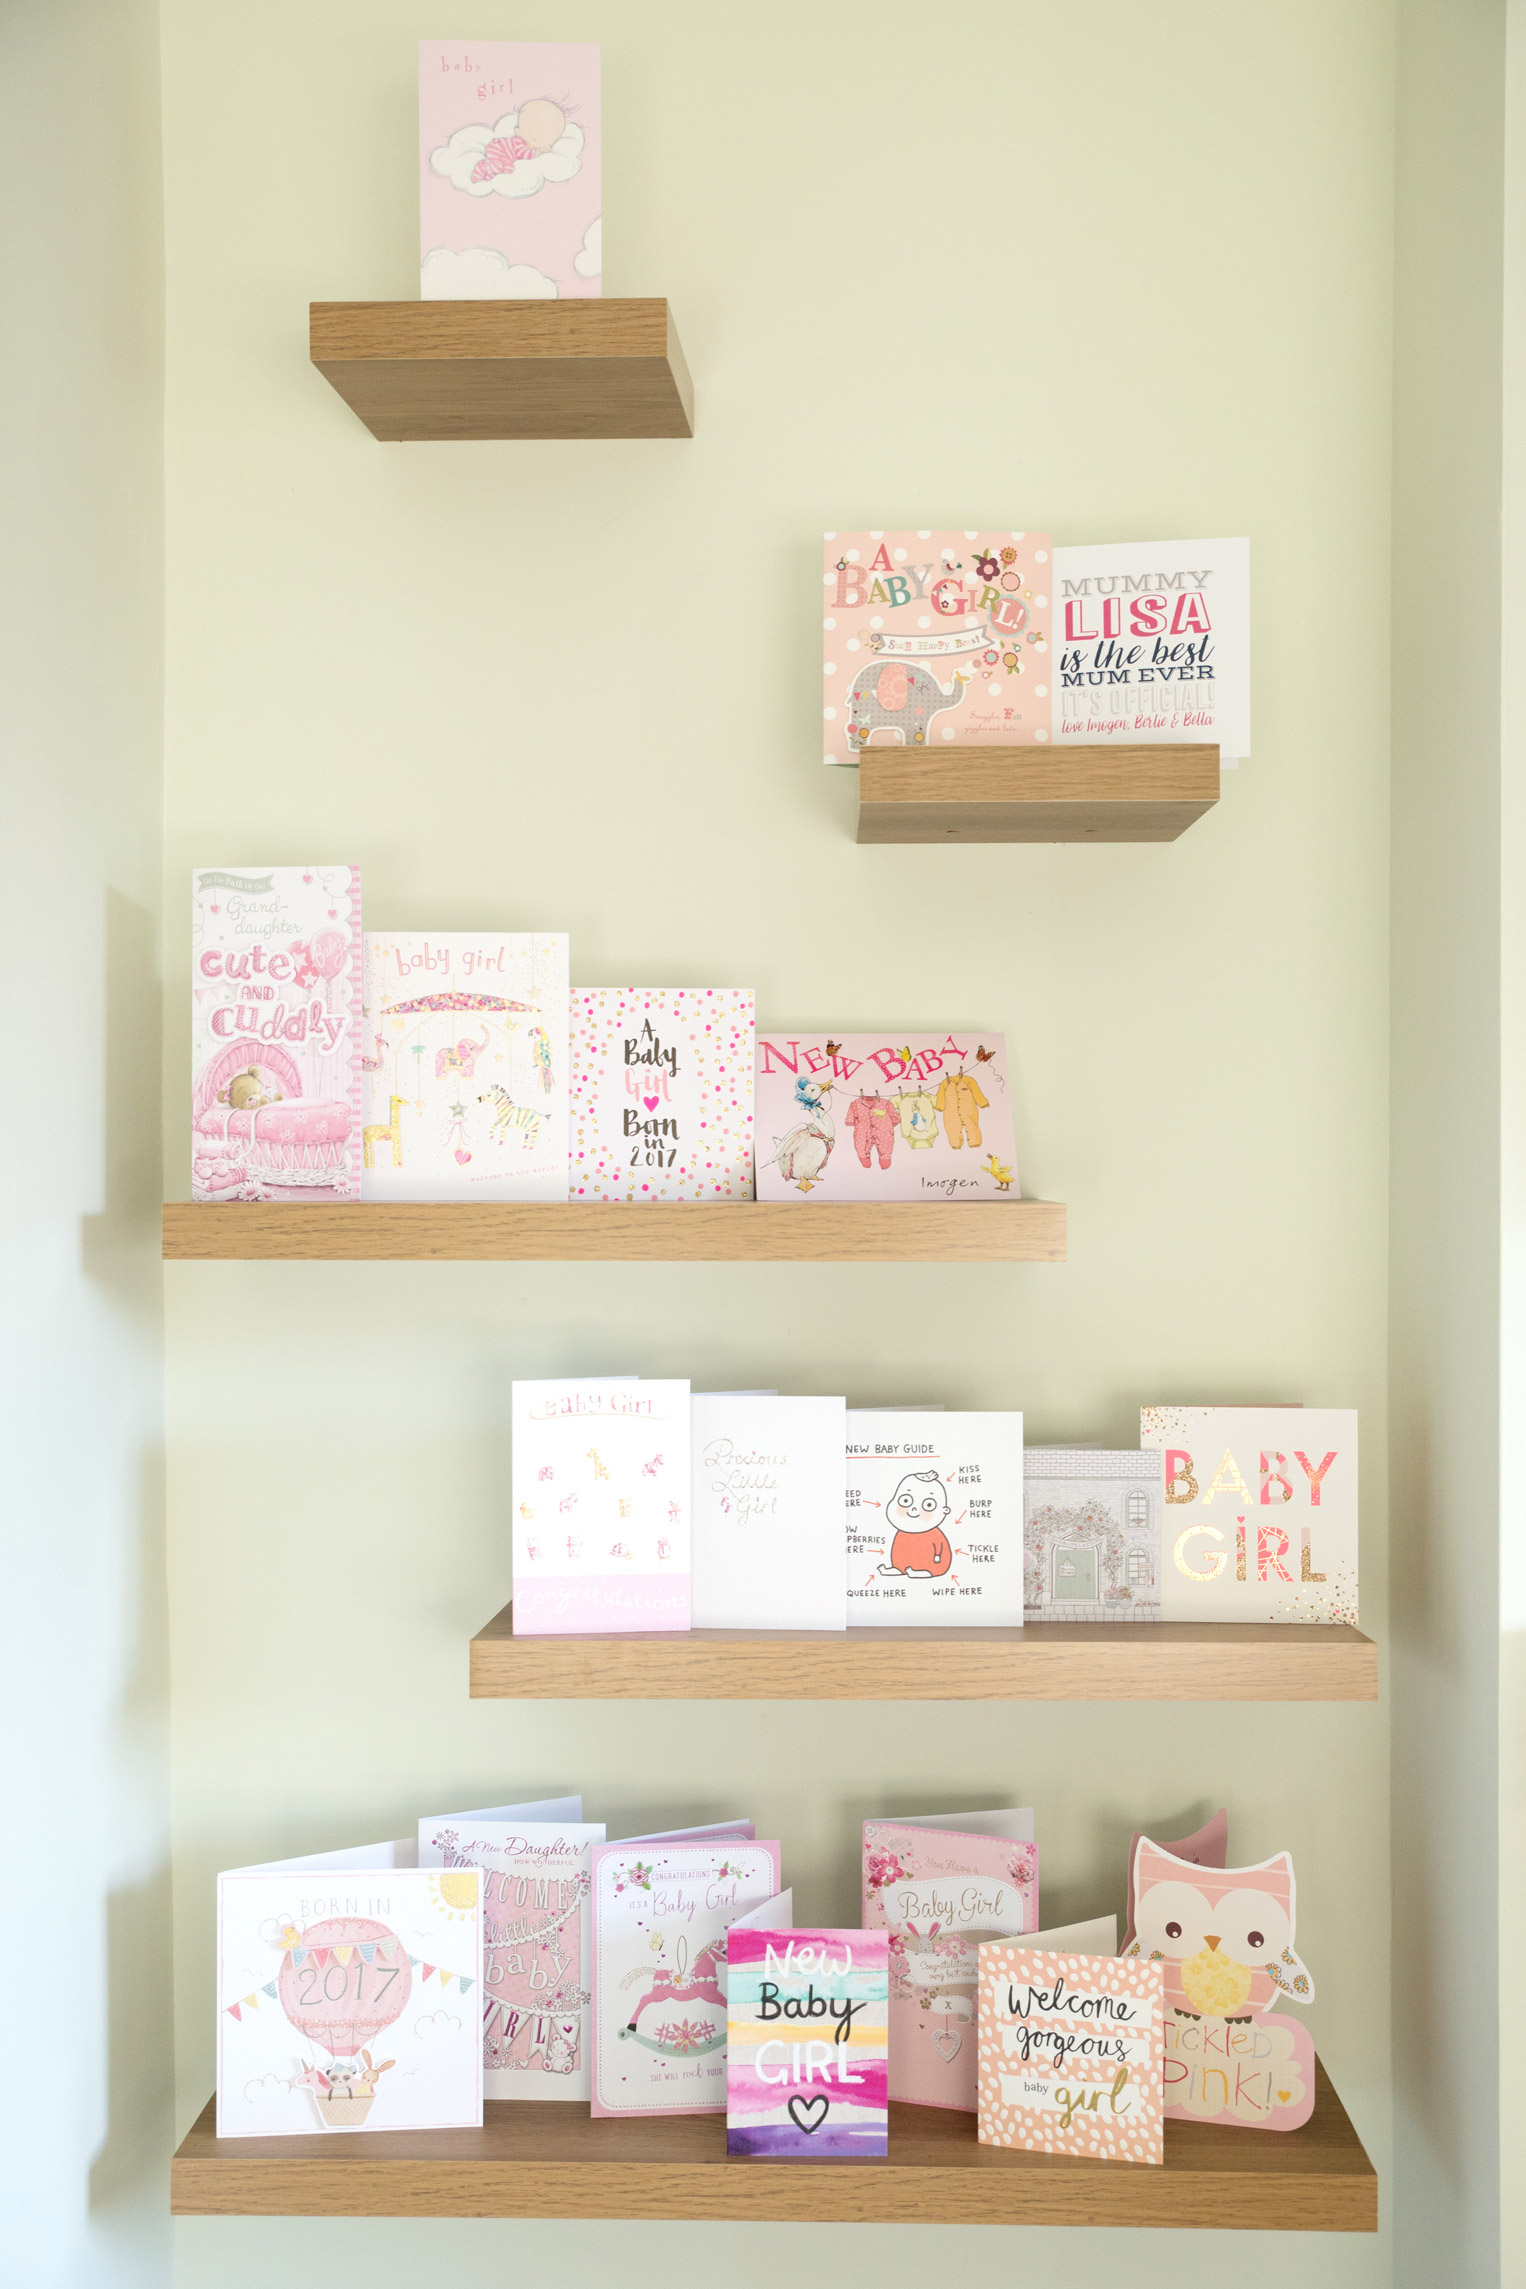 newborn baby cards sitting on shelves, welcoming a little girl in the world